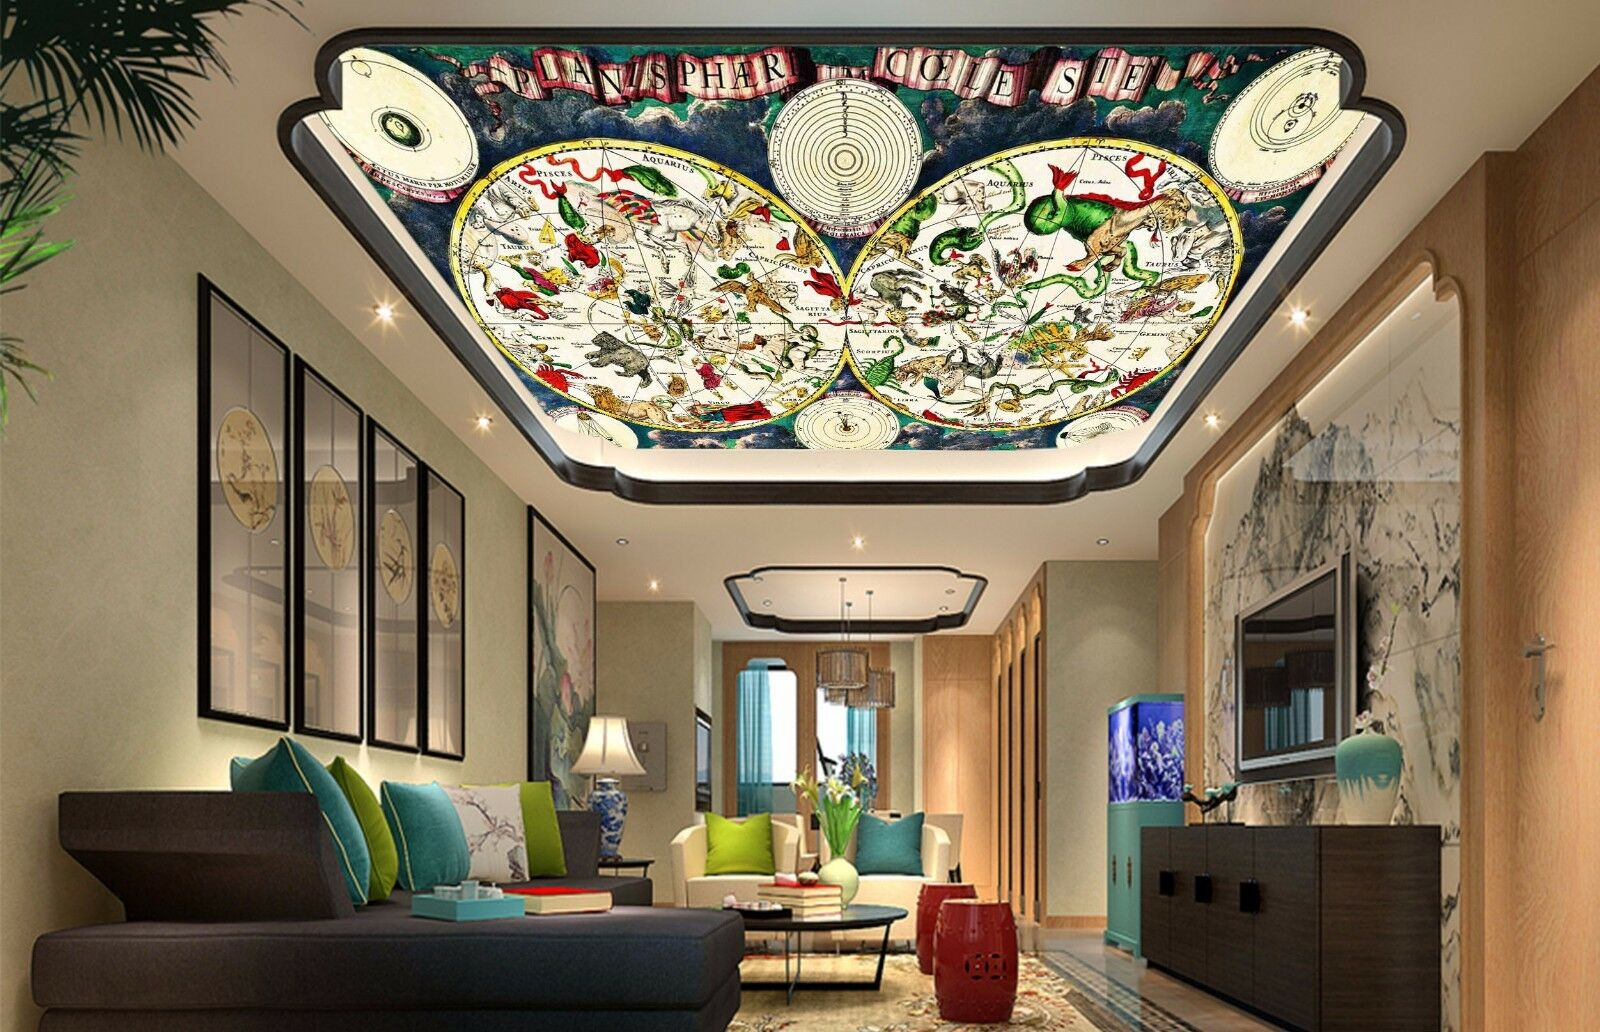 3D Painting 6 Ceiling WallPaper Murals Wall Print Decal AJ WALLPAPER US